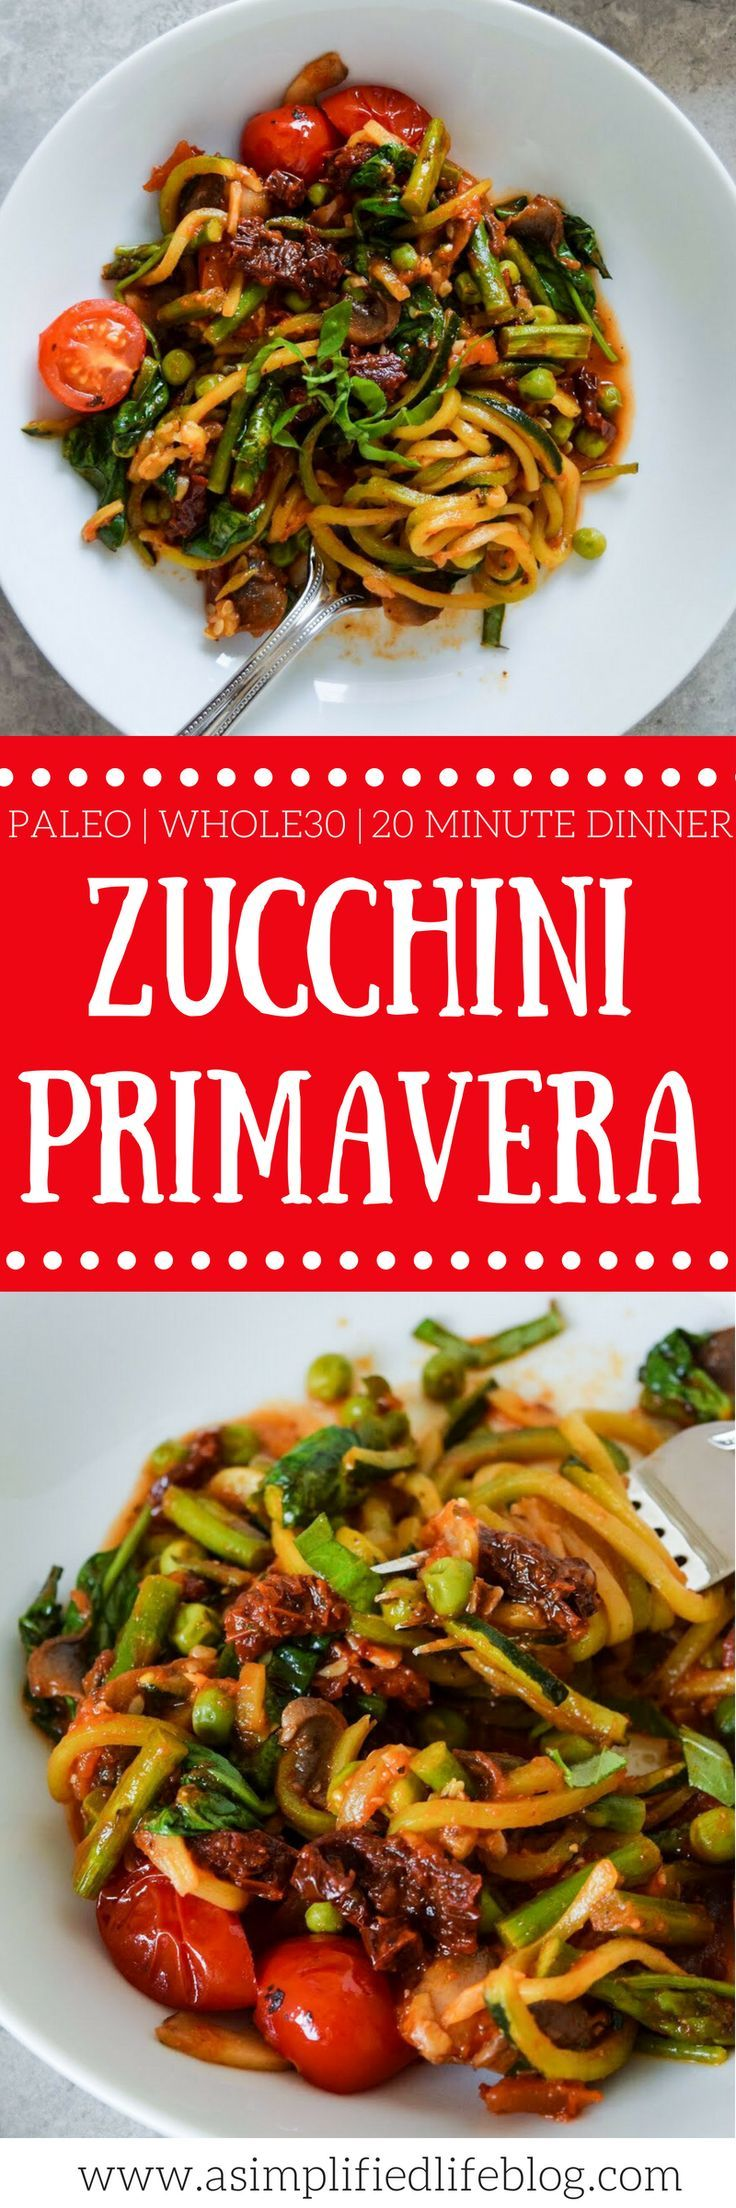 This Zucchini Primavera is bursting with flavor and an easy 20-minute Paleo and Whole30 dinner! Pair it with grilled chicken or shrimp, or enjoy as is!